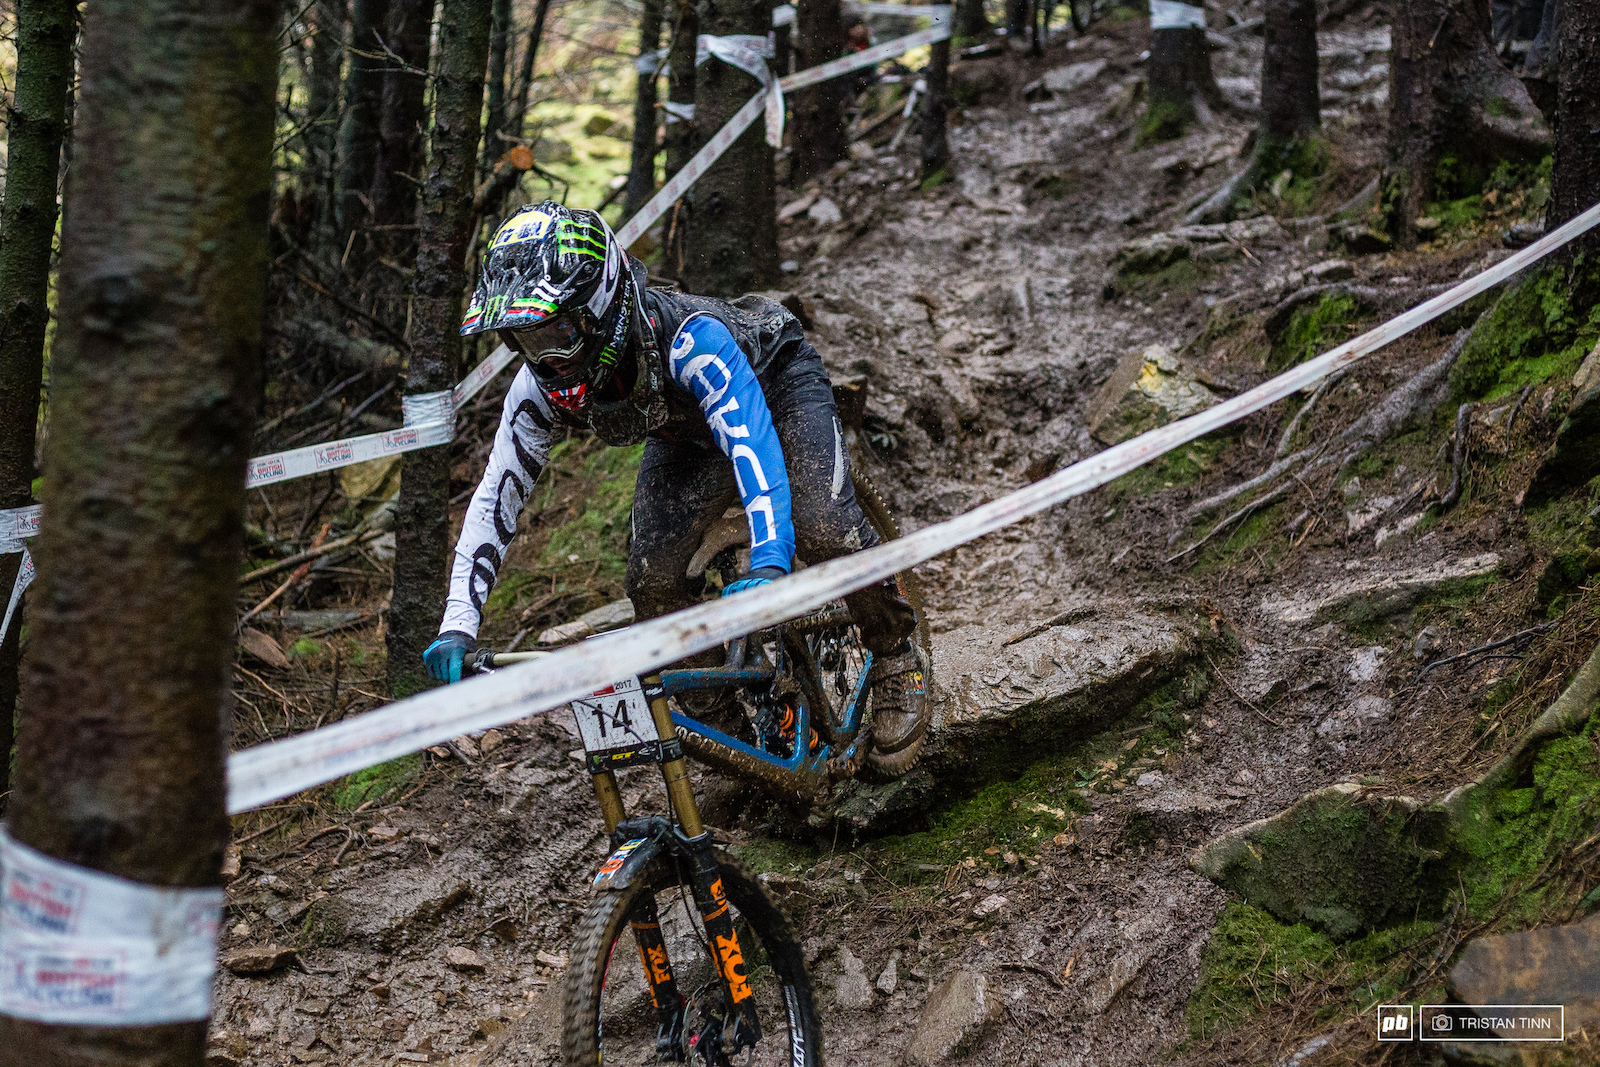 Danny Hart reigning World Champion was no doubt feeling right at home in the steep tight UK mud bath